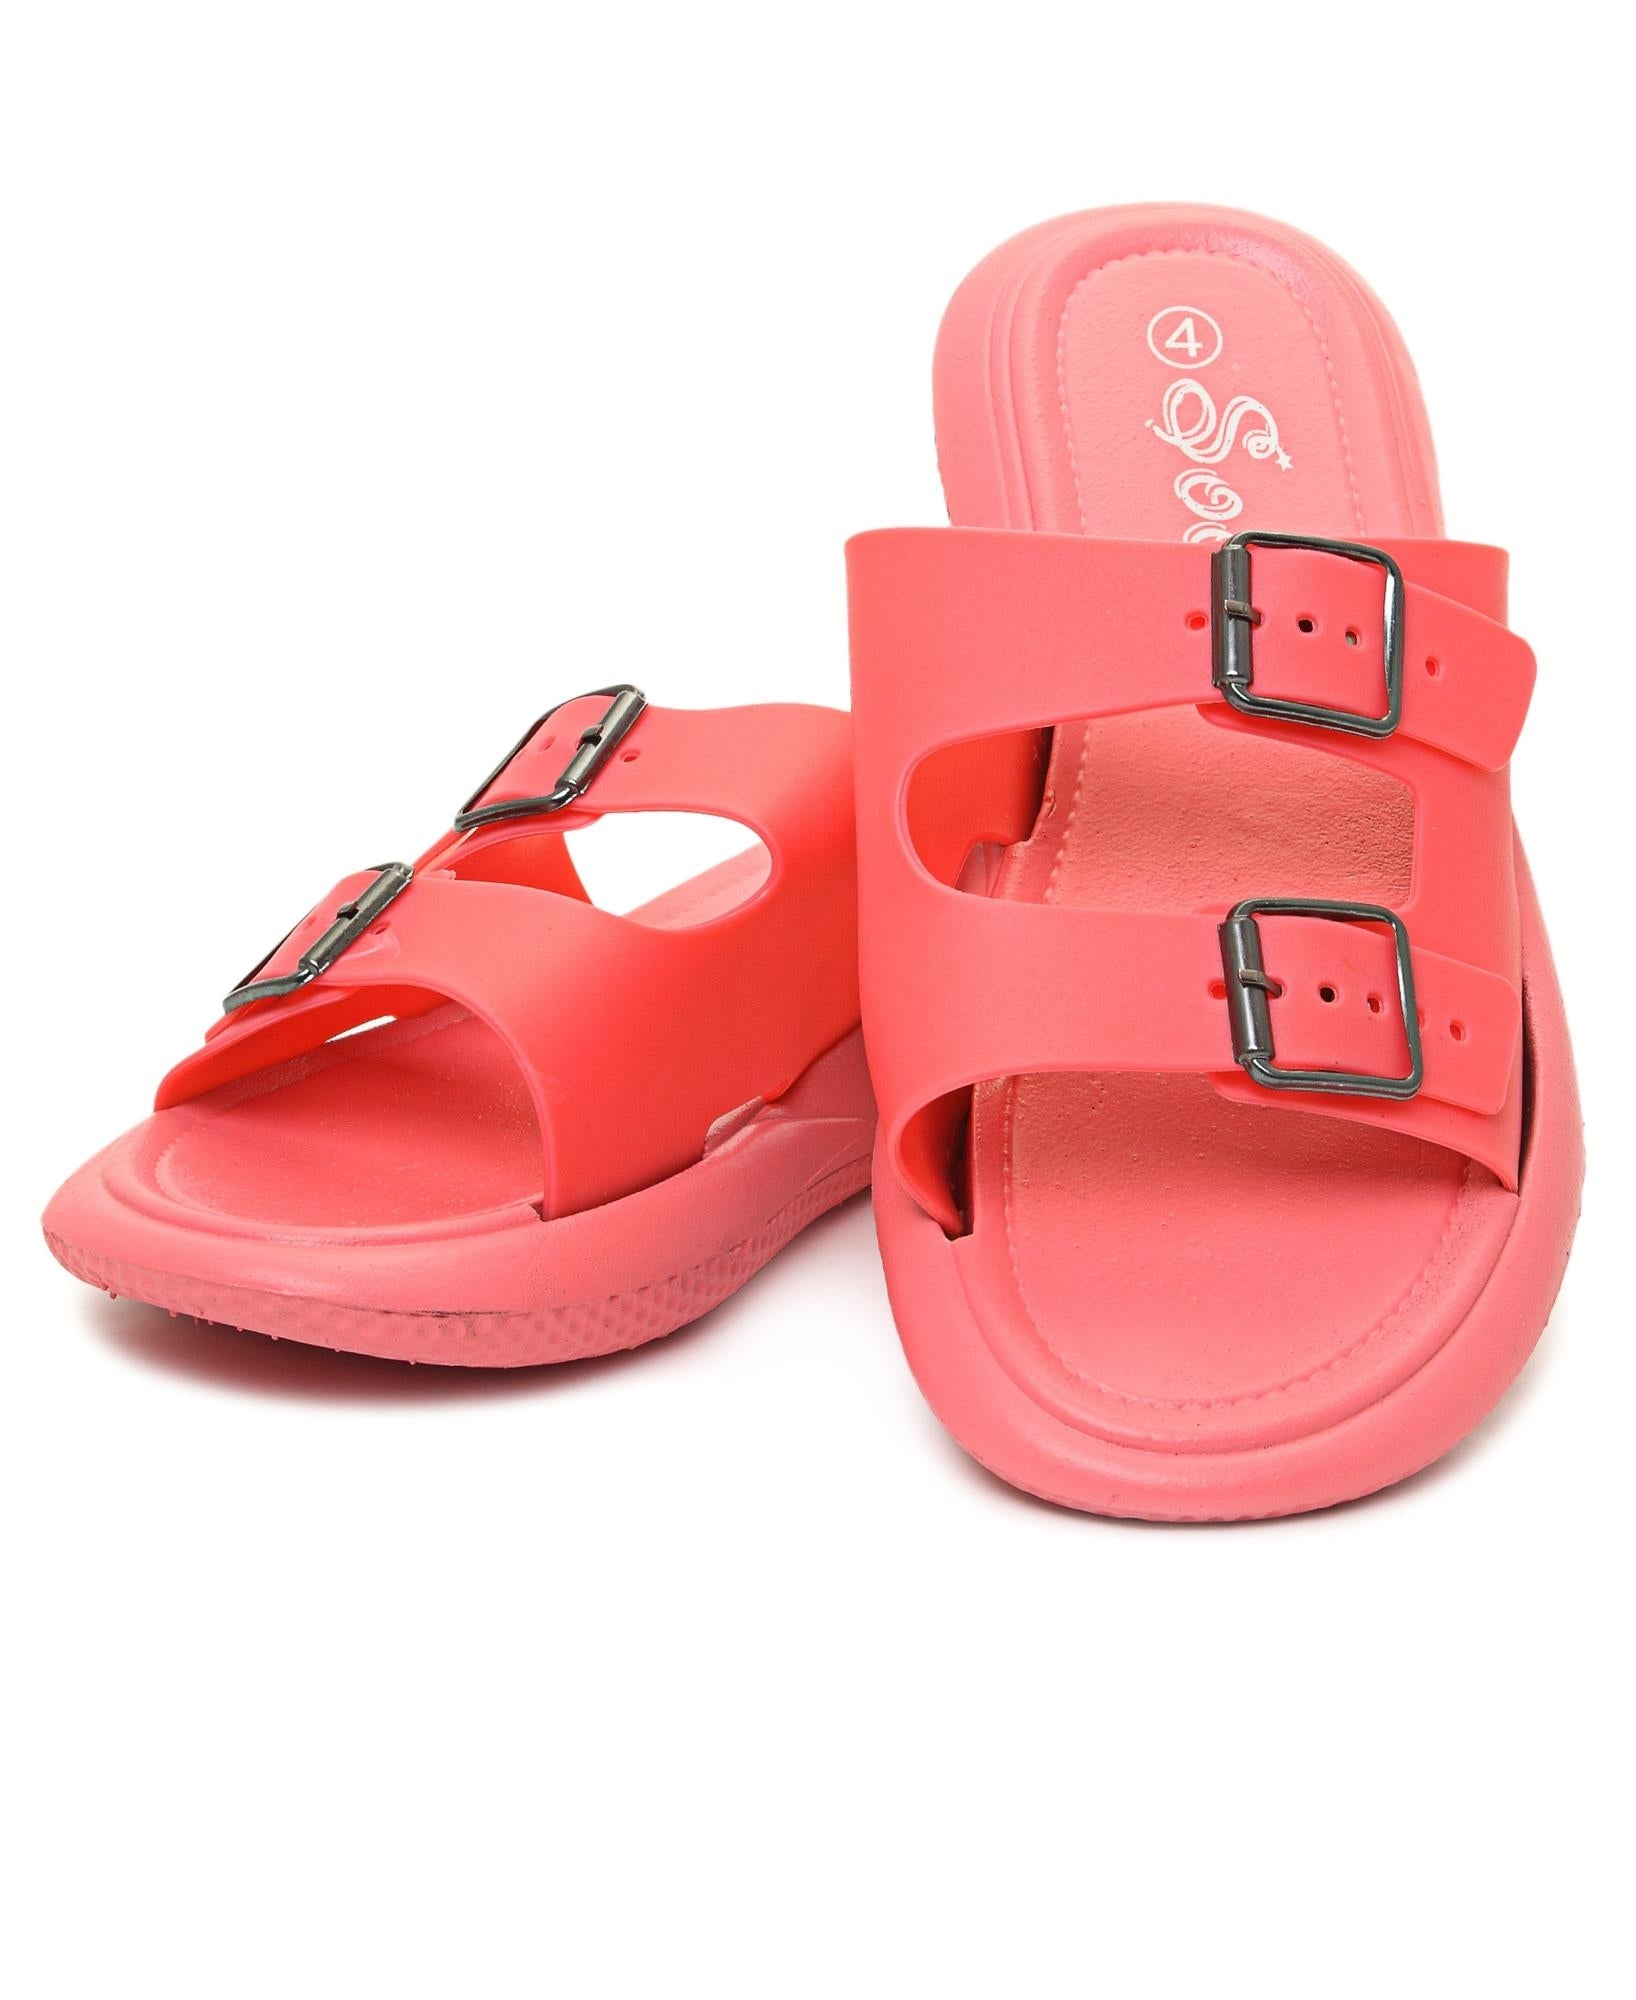 Double Buckle Sandals - Coral